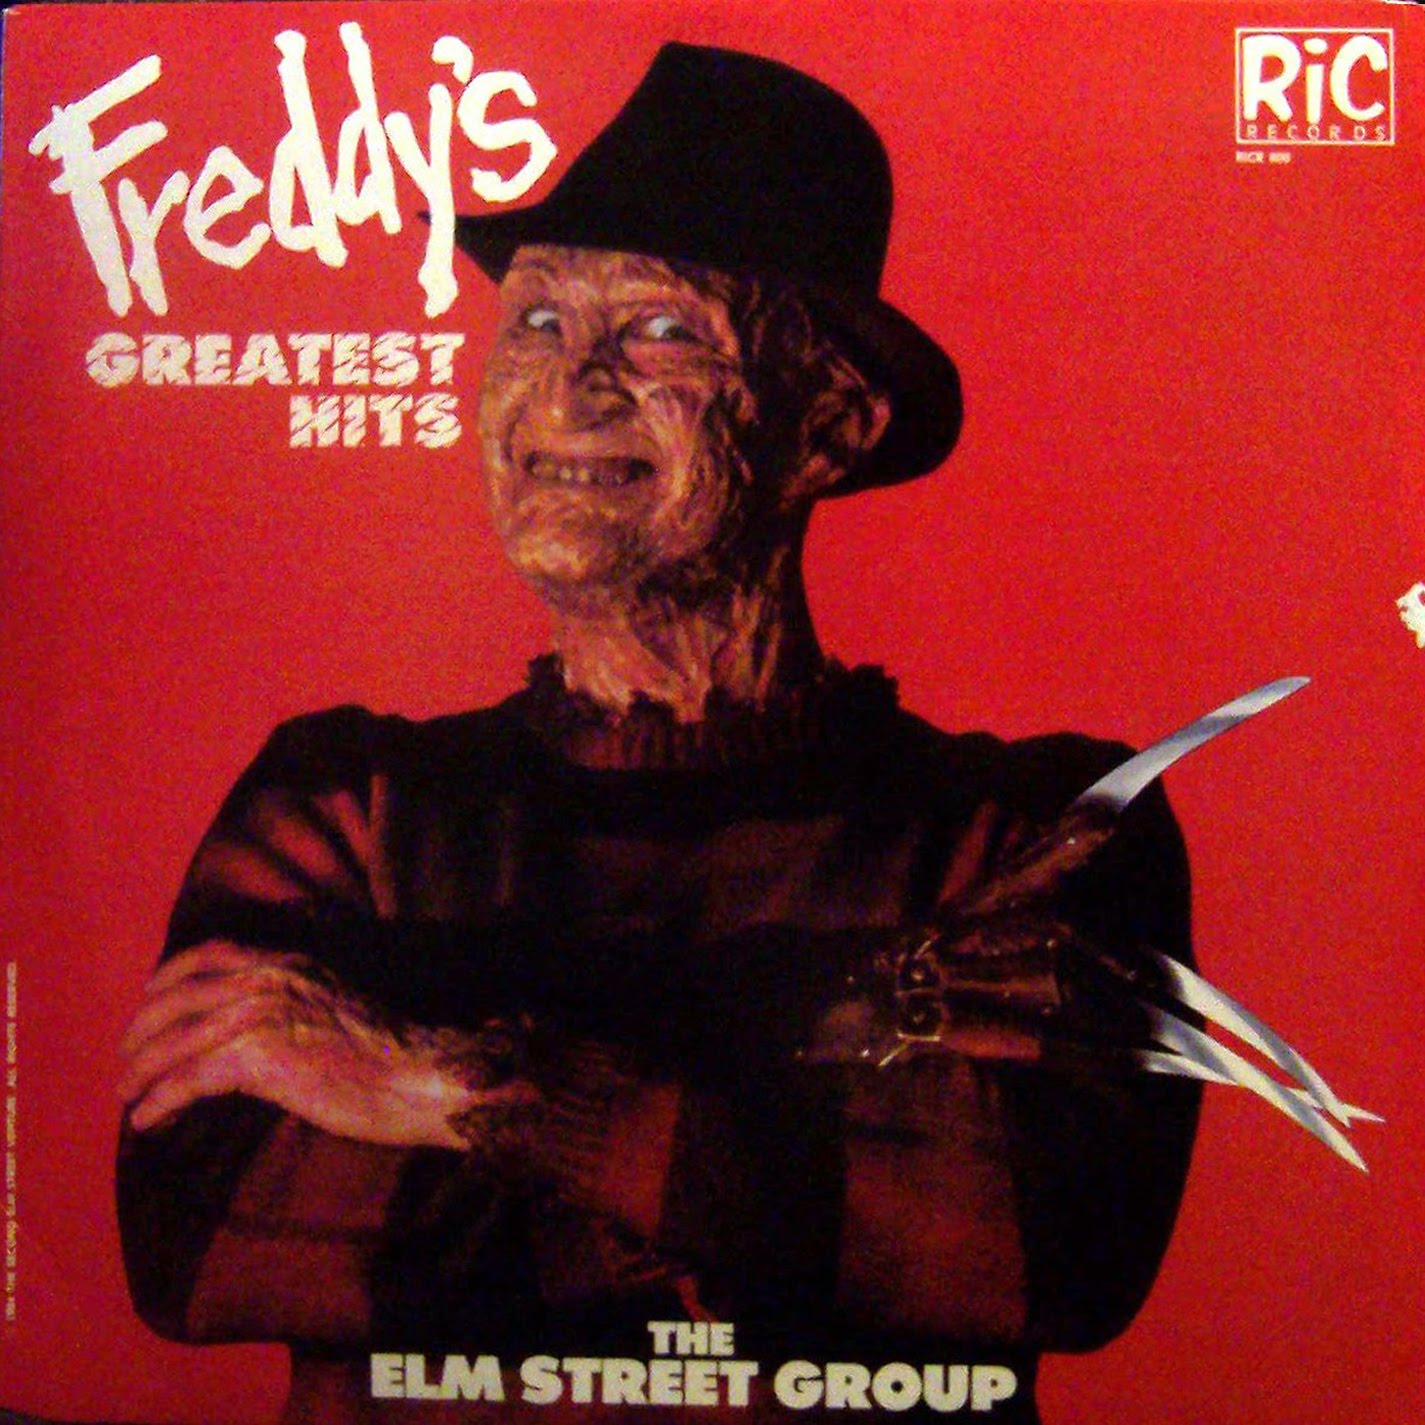 Freddyhits - That Time When Freddy Krueger Was a Rap Star